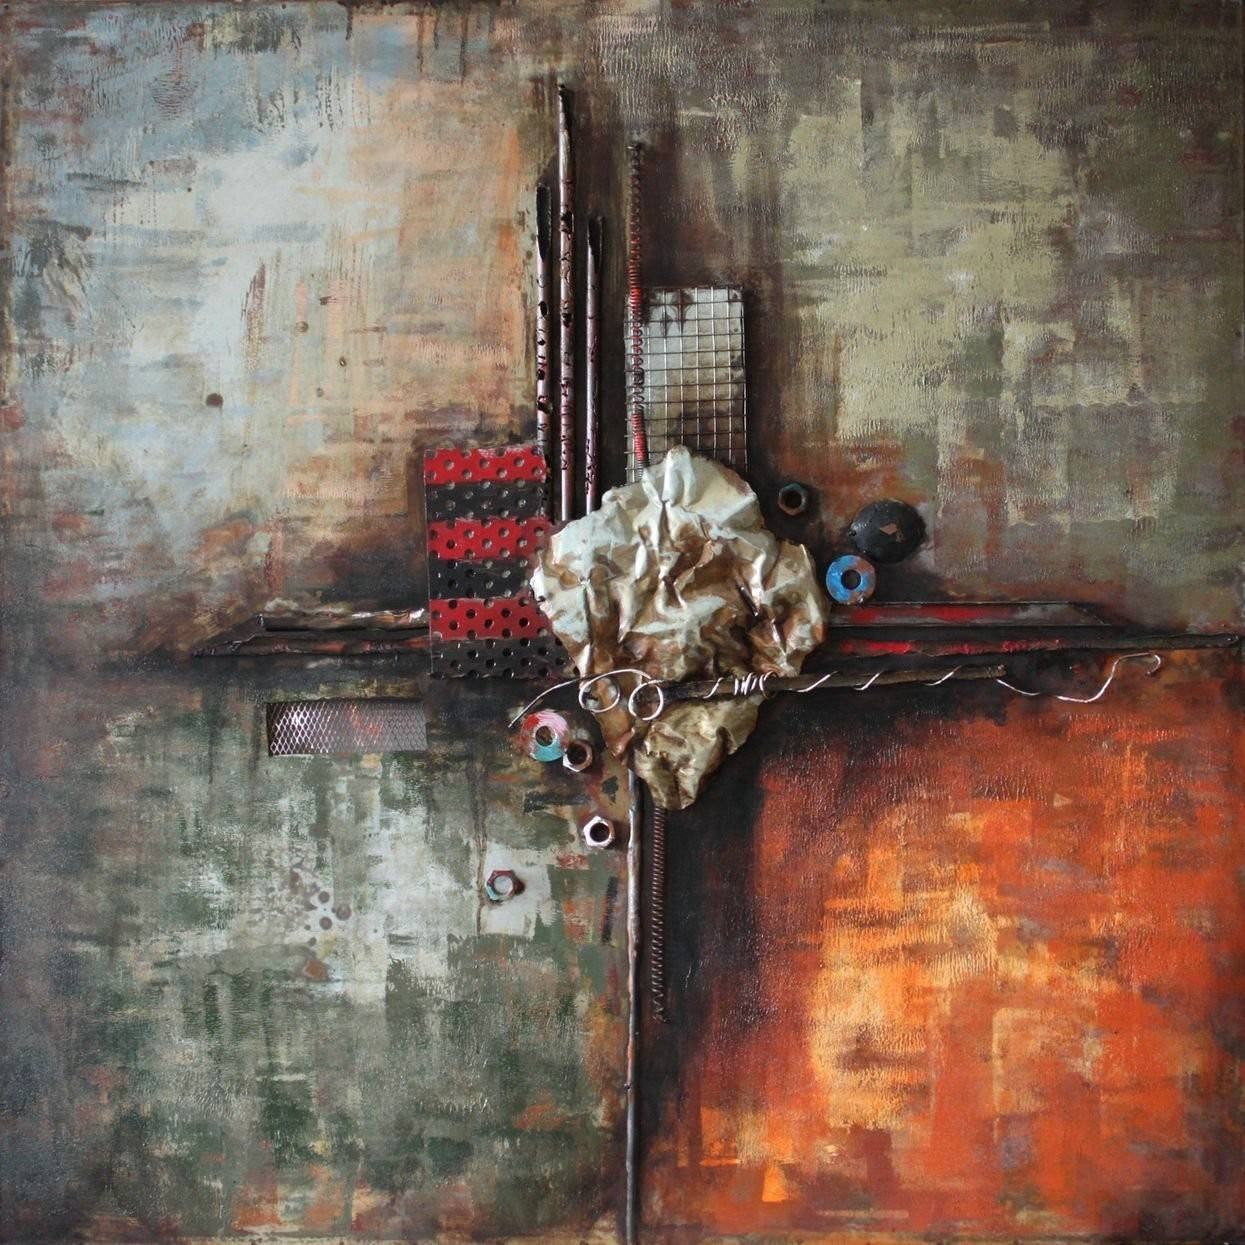 Abstract 4 3d Metal Wall Art Hand Painted Pertaining To 2017 3d Visual Wall Art (View 16 of 20)